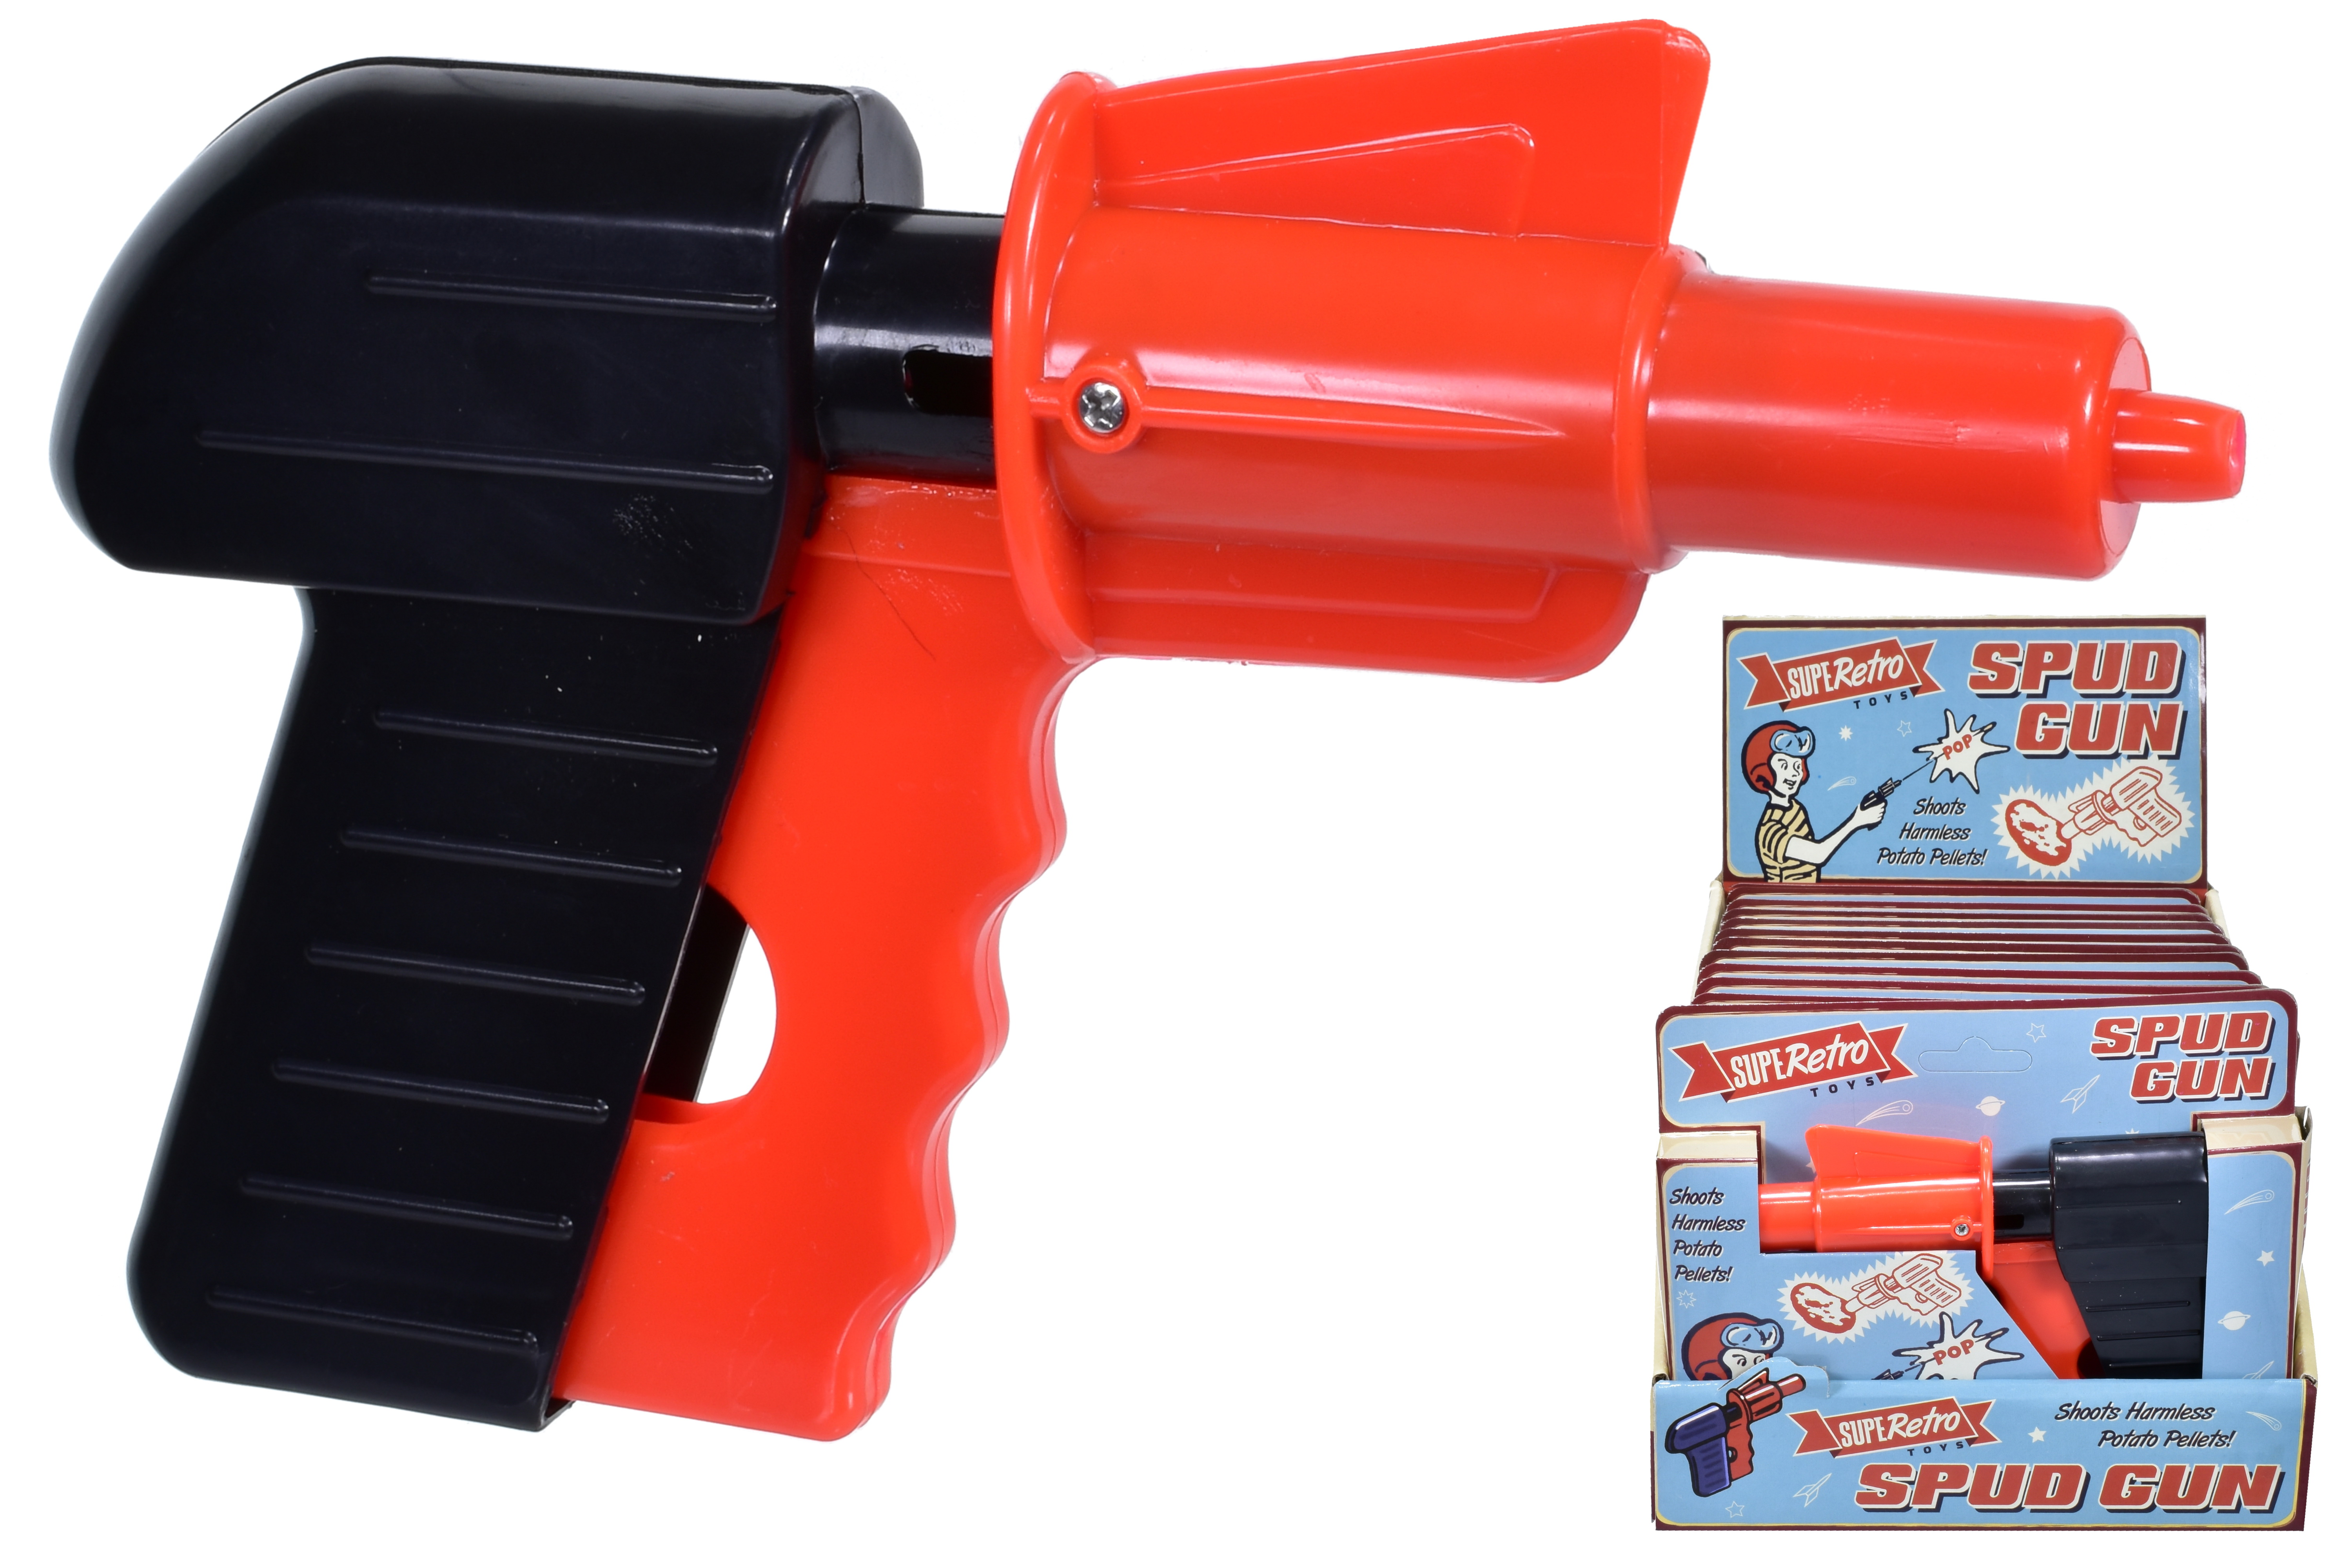 Spud Gun In Open Touch Hanging Box With Display Box